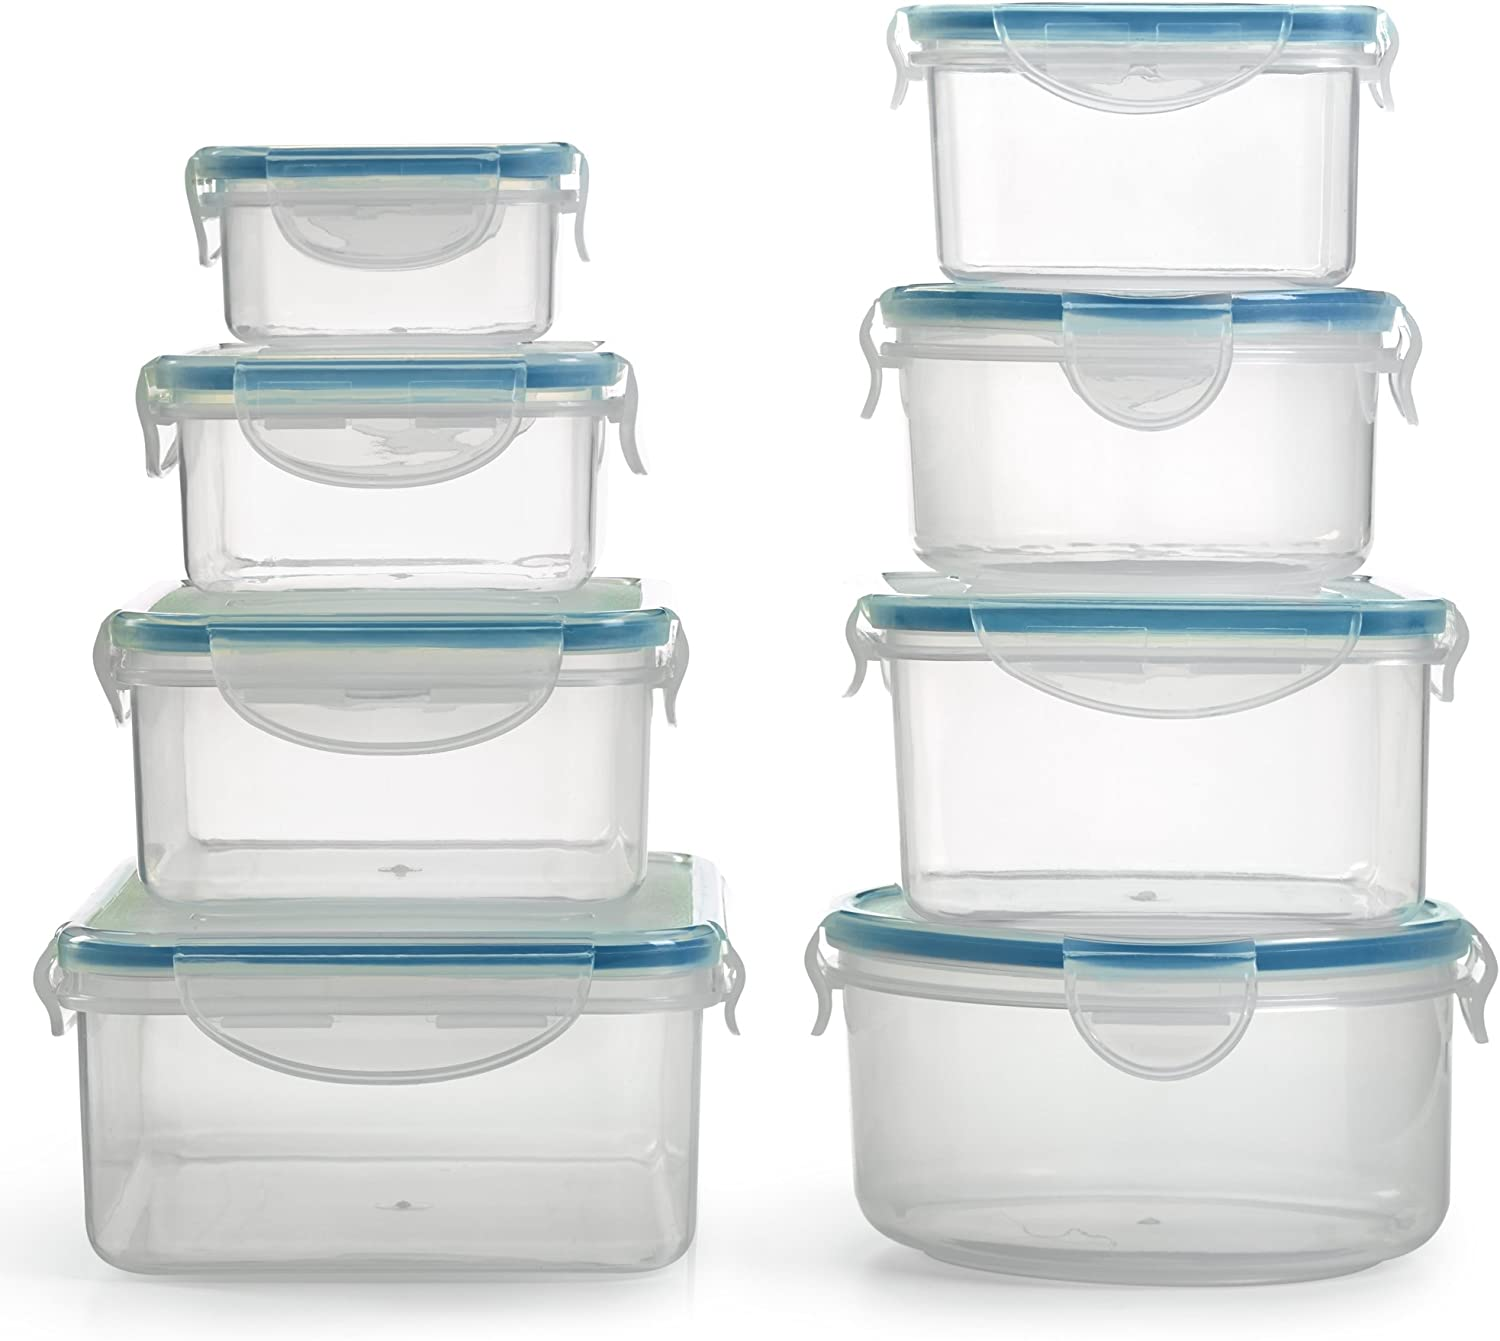 1790 Plastic Food Containers with Lids - 16 Piece, BPA Free, Locking Lids, Dishwasher Safe Freezer Safe, Airtight - Ideal for Home, Kitchen, Storage & Organization